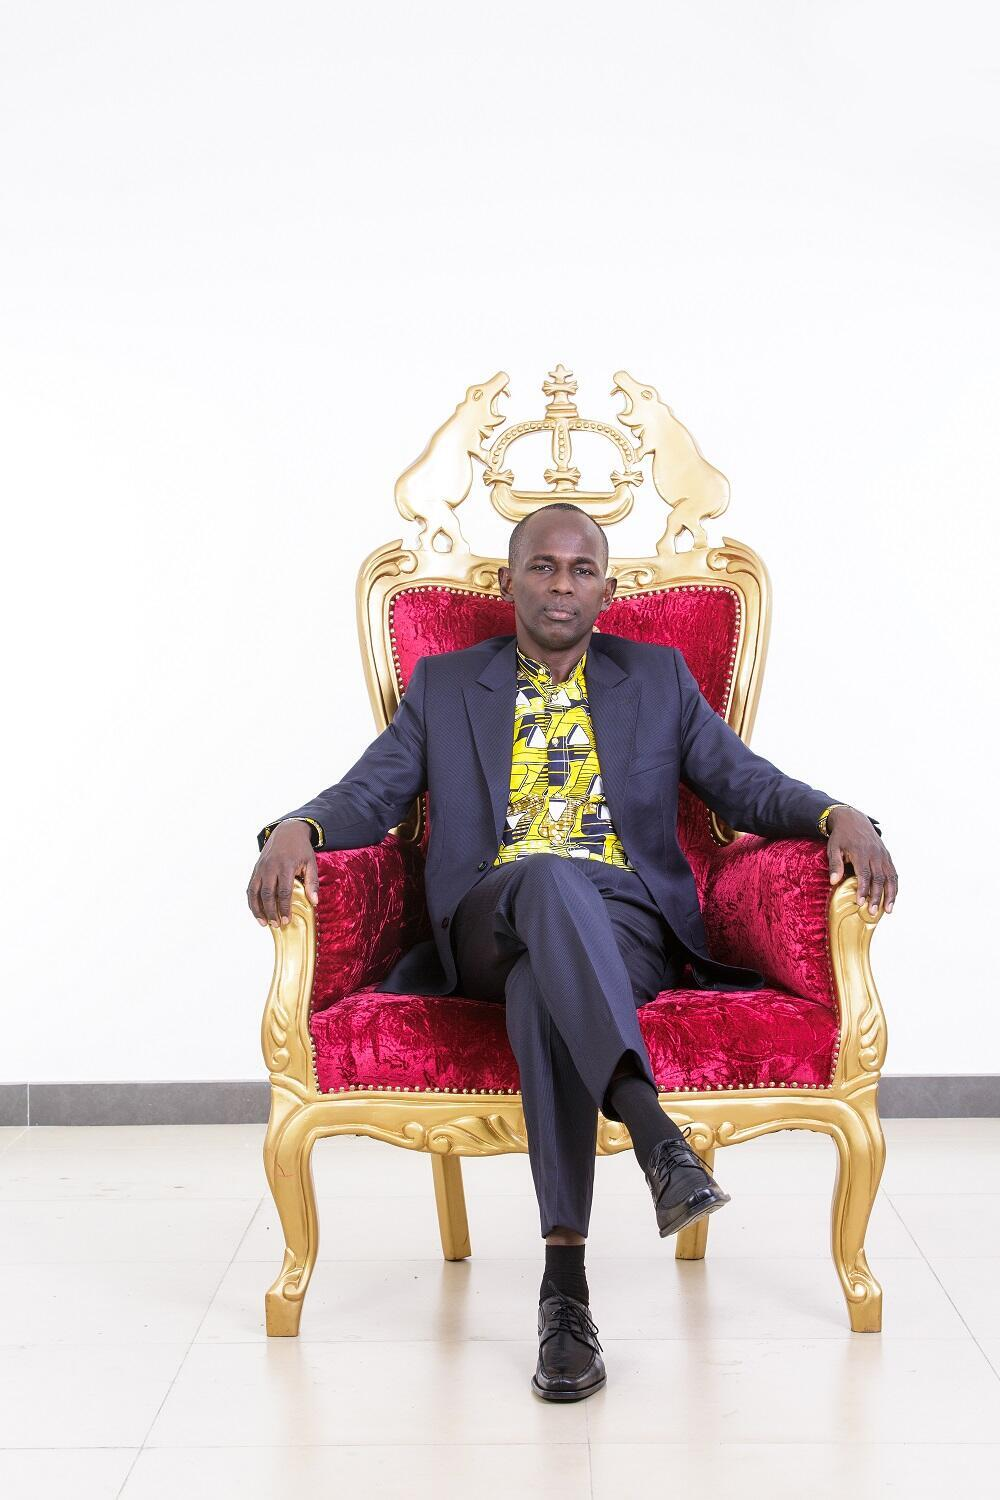 Mamane on the Gondwana throne, one its president doesn't want to let go